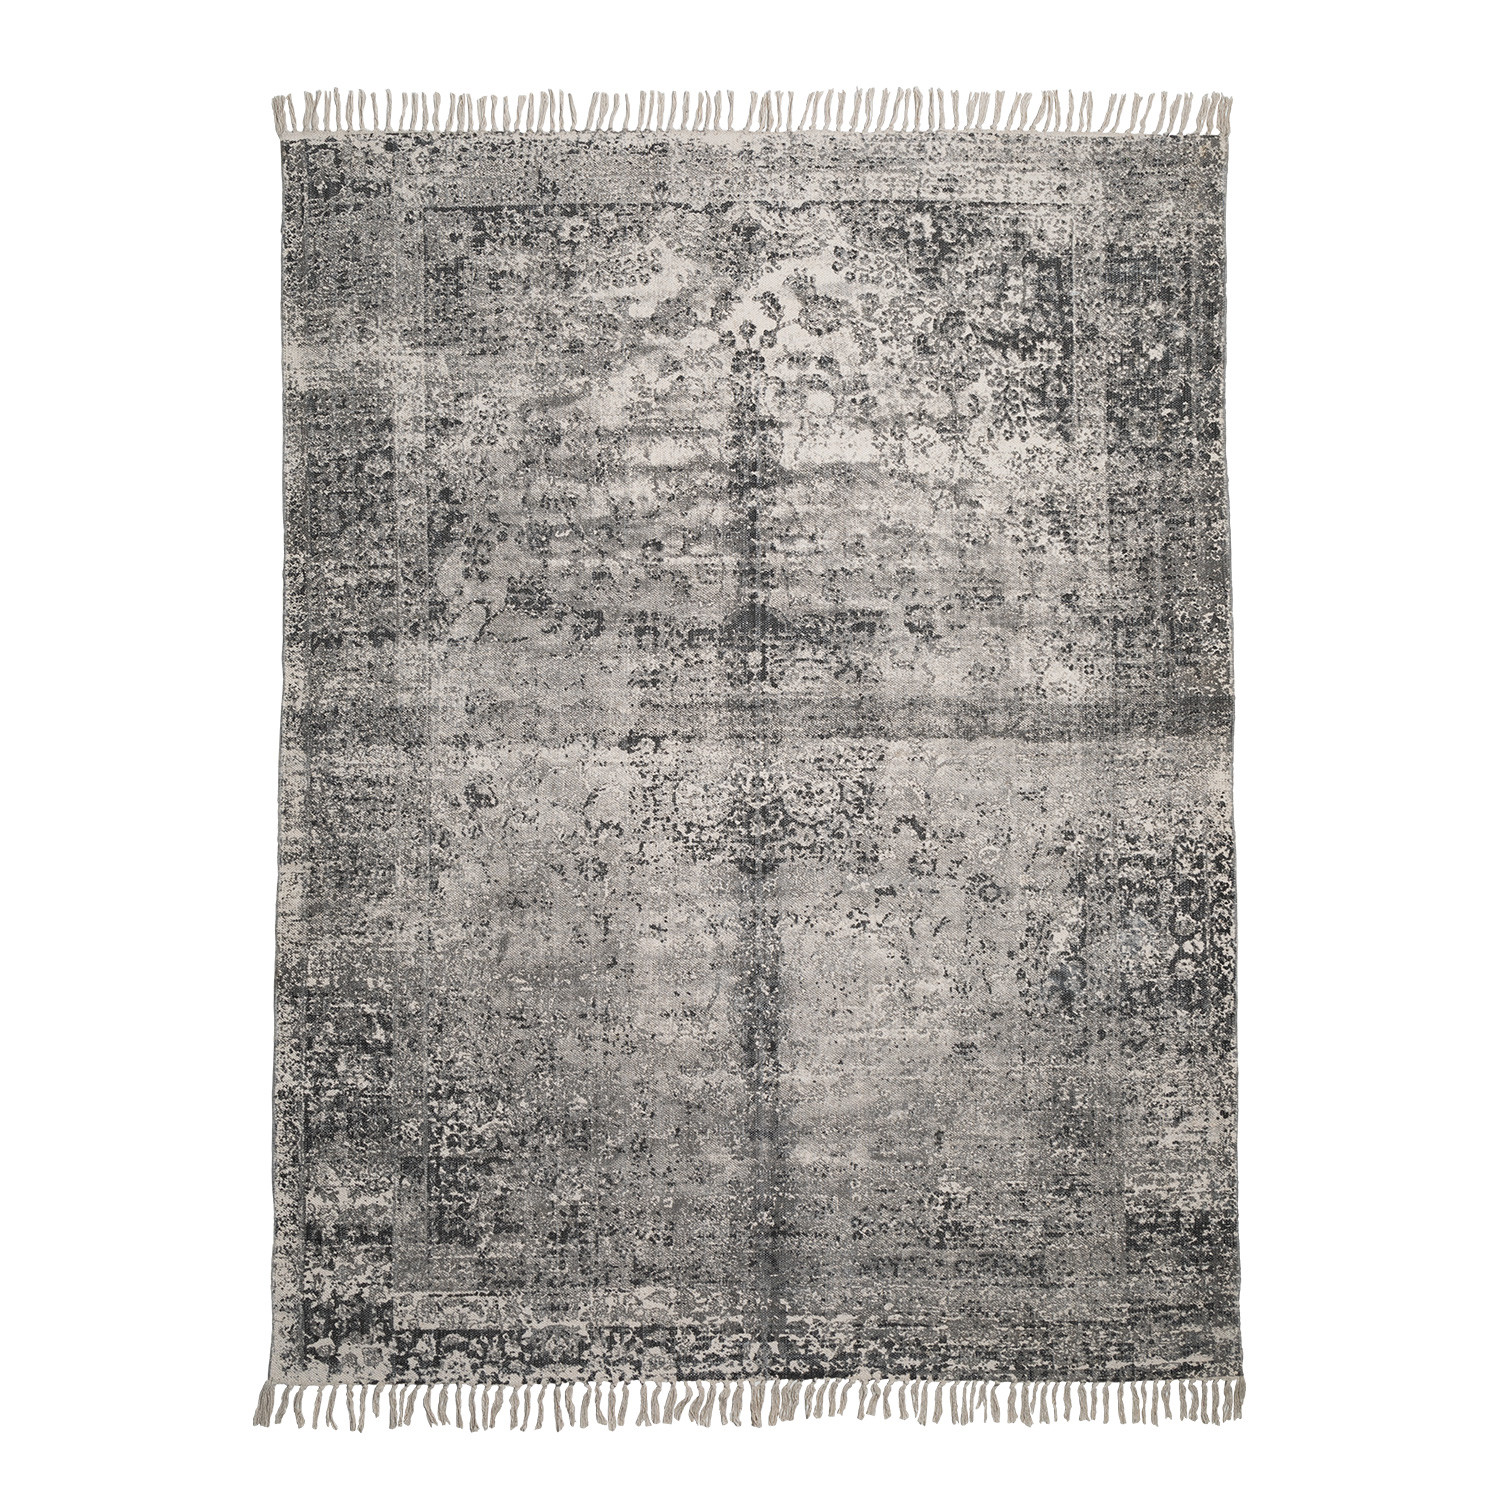 Asulep Cotton Rug, gallery image 1